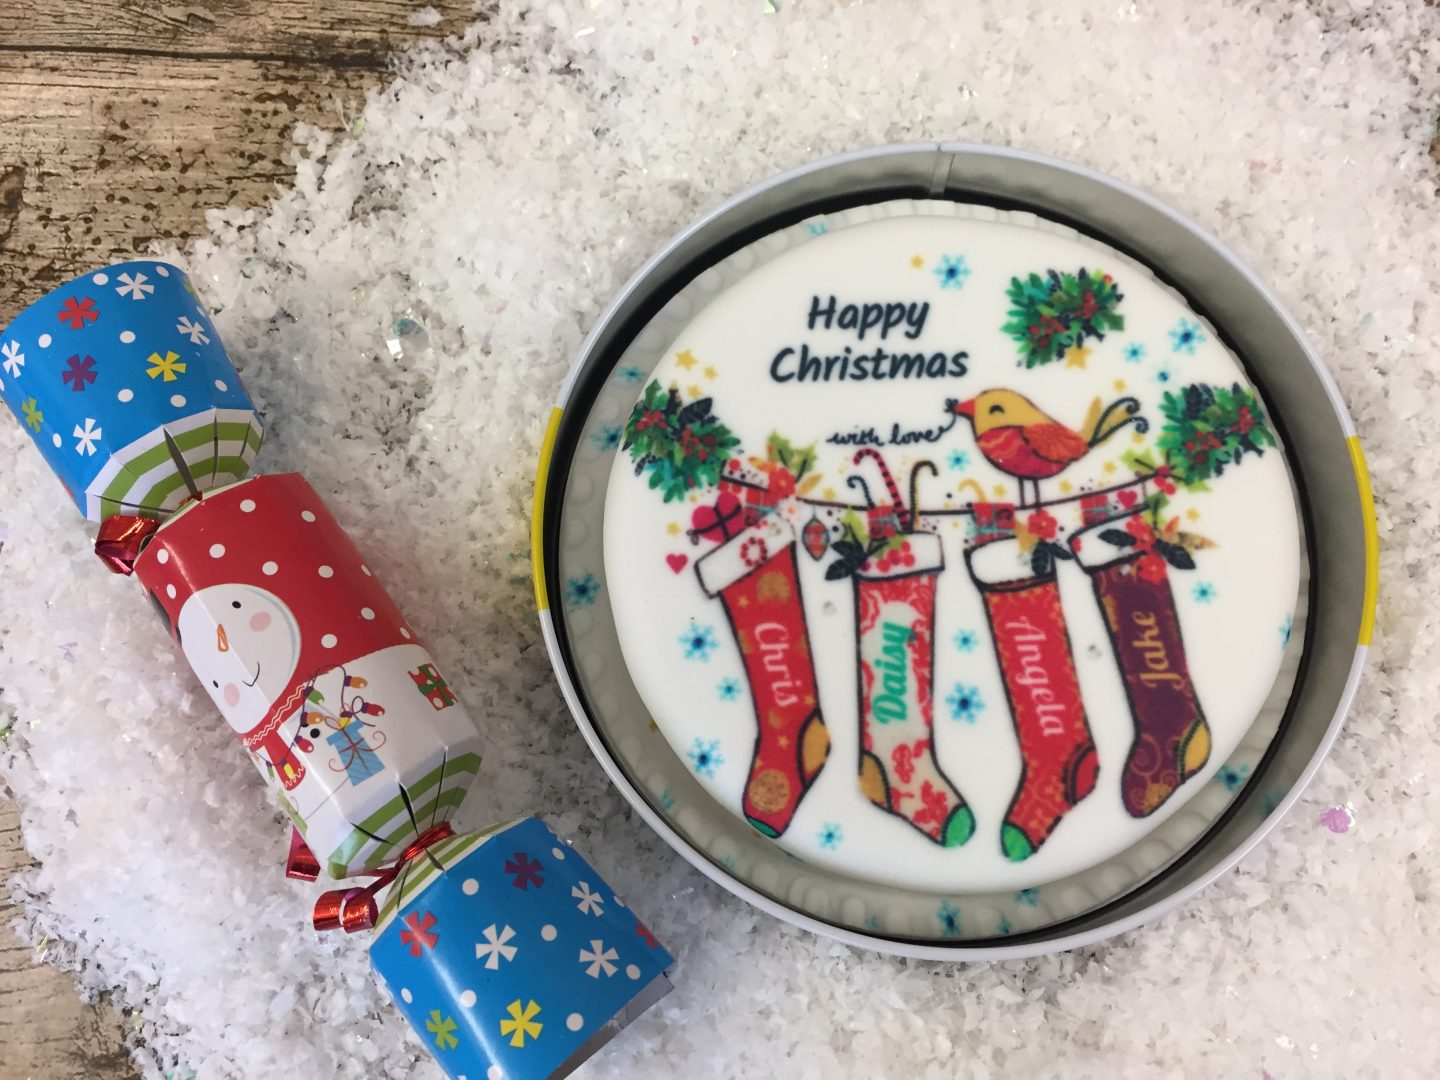 Celebrating Christmas With bakerdays Letterbox Gift Cakes [Review & Giveaway}